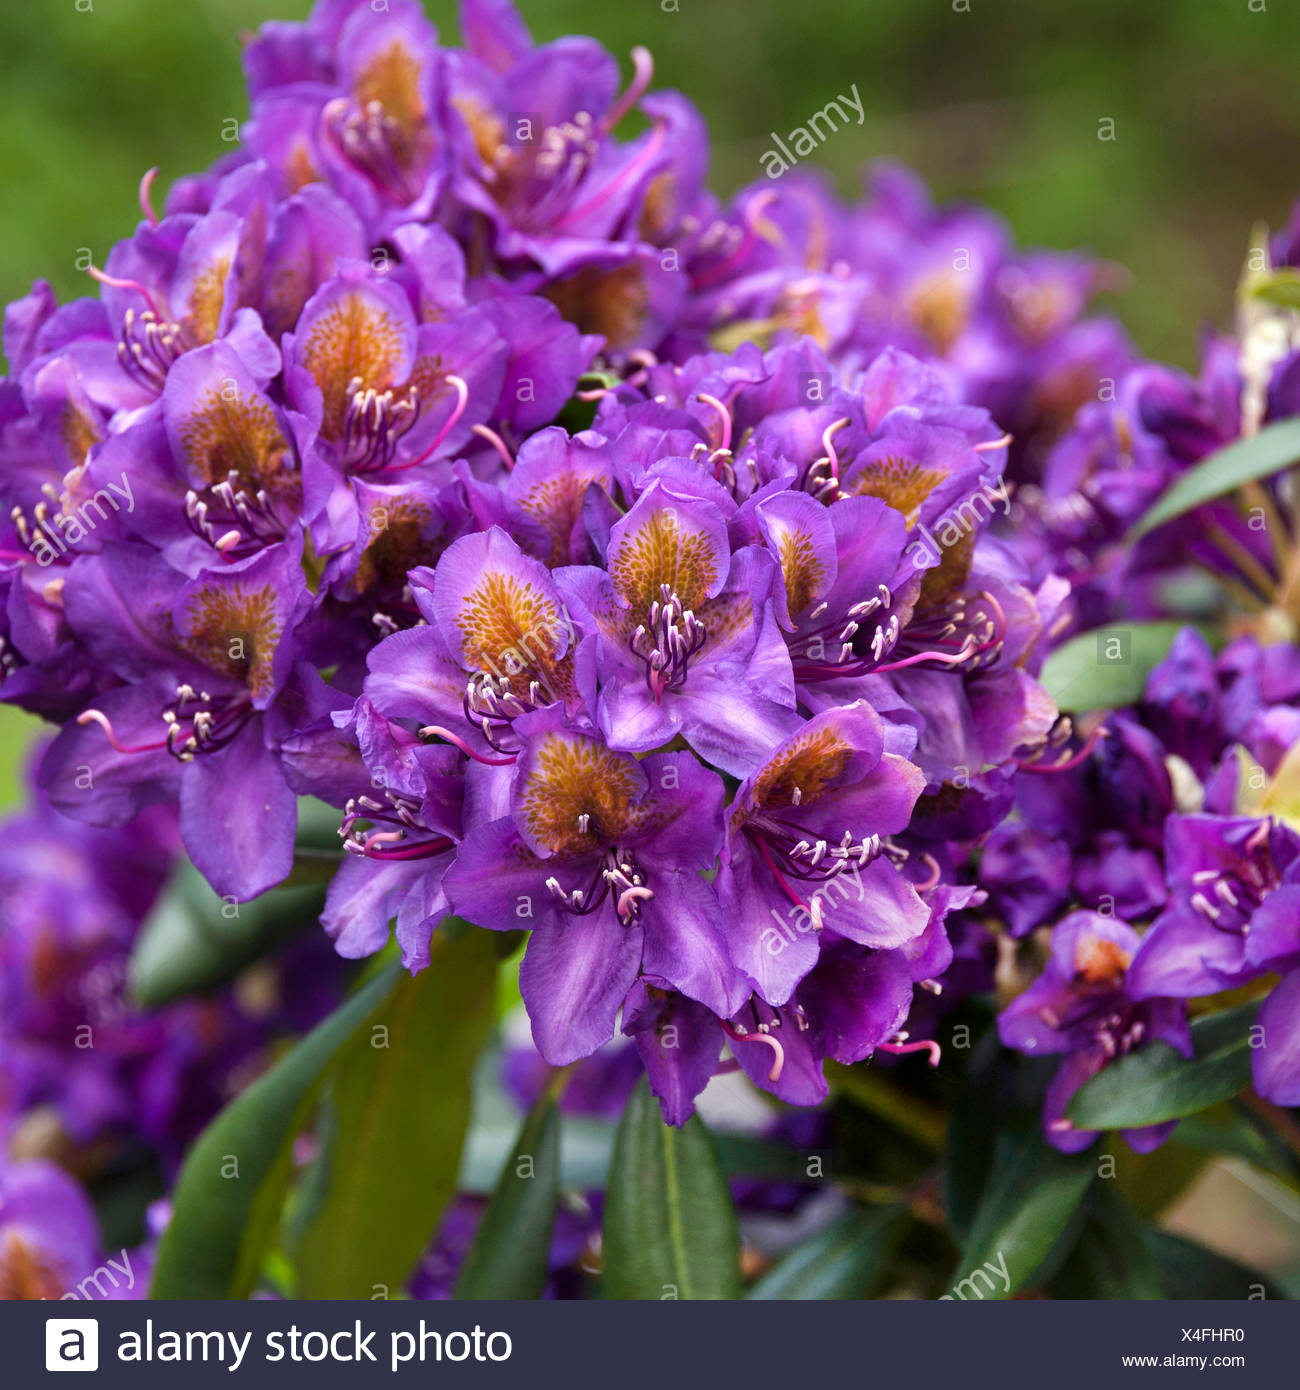 rhododendron (Rhododendron 'Marcel Menard', Rhododendron Marcel Menard), blooming cultivar Marcel Menard - Stock Image